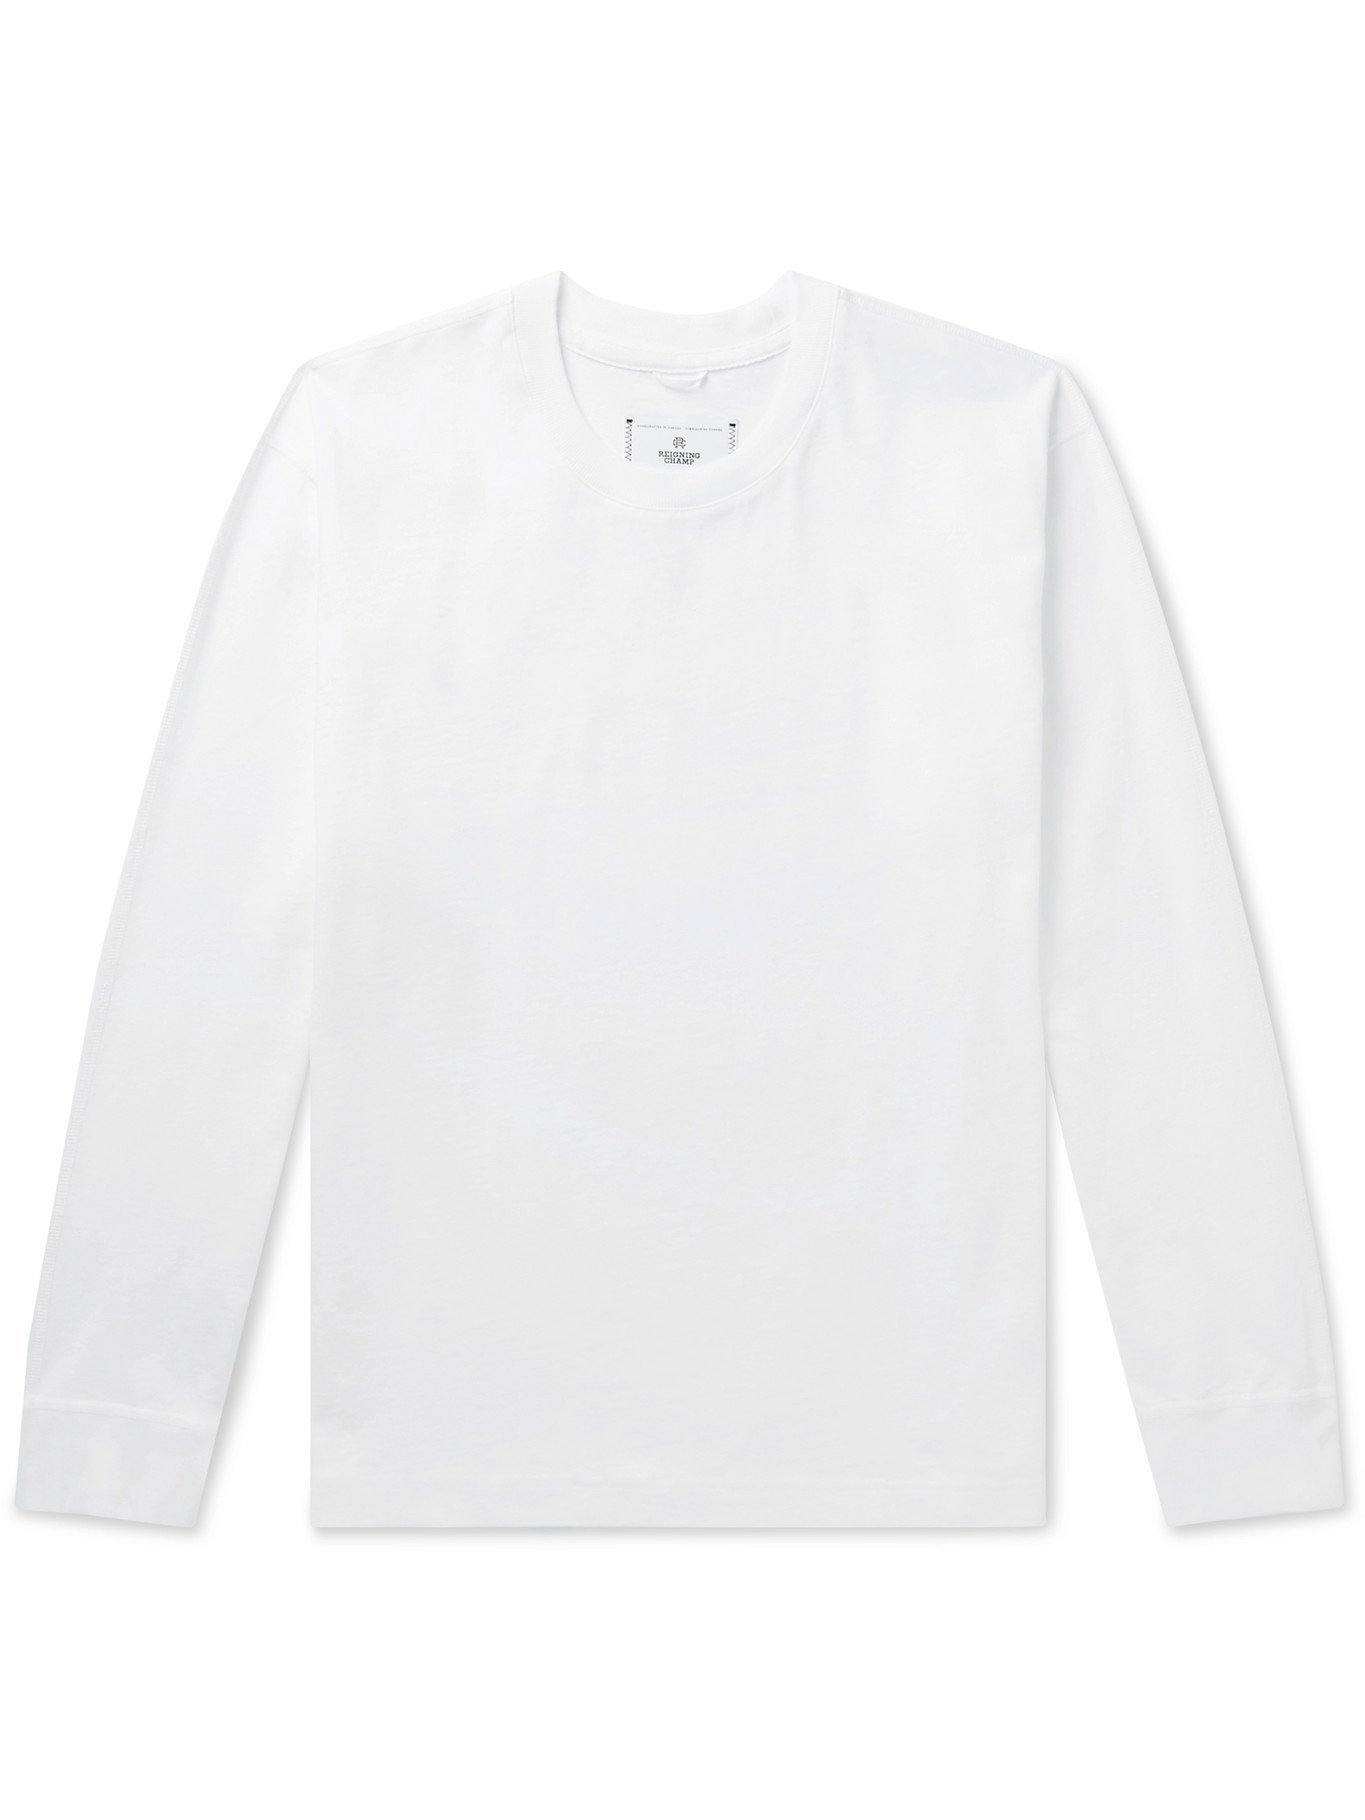 Photo: REIGNING CHAMP - Cotton-Jersey T-Shirt - White - M